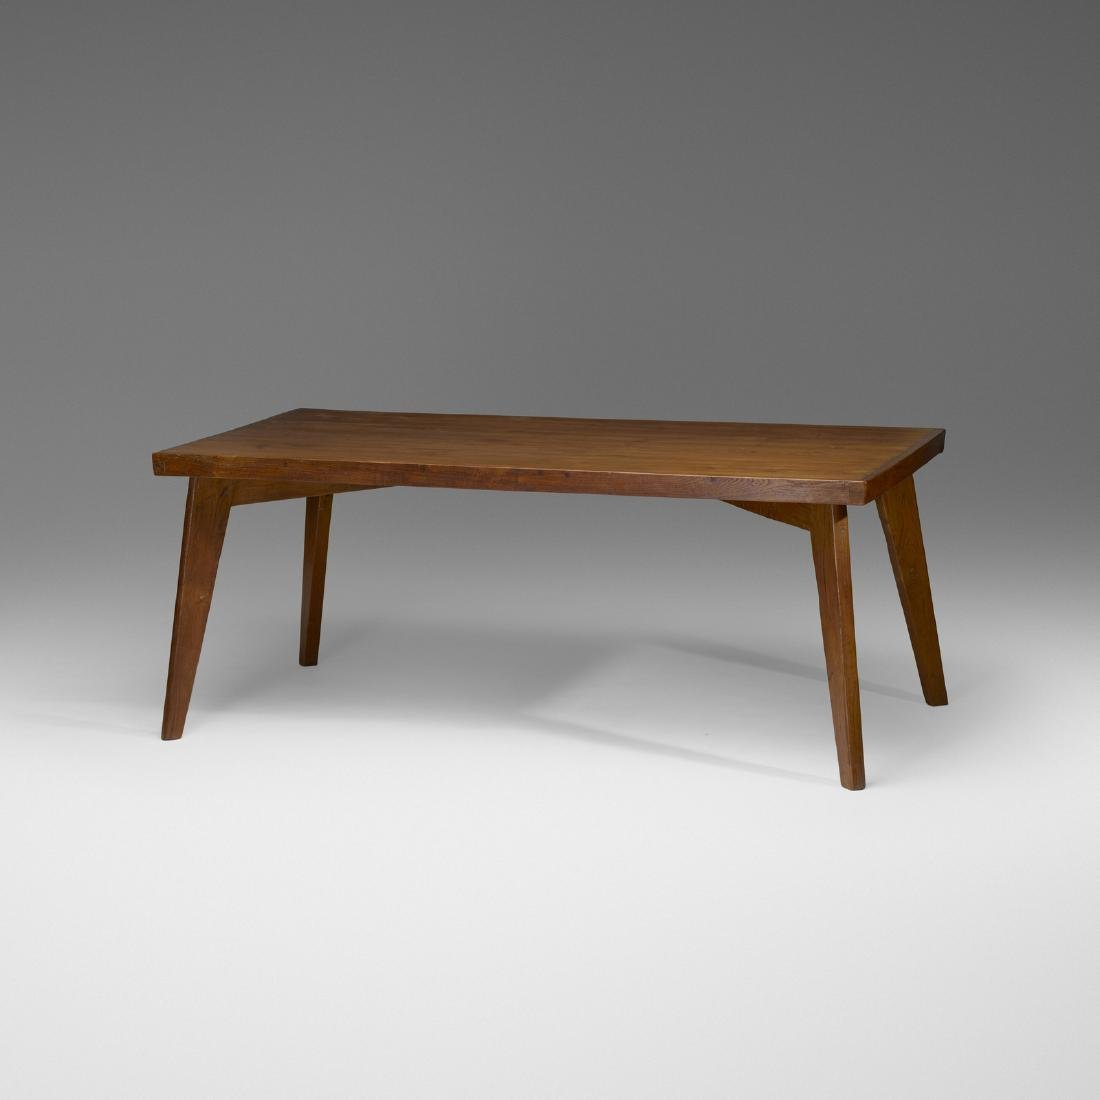 Pierre Jeanneret, dining table from Chandigarh